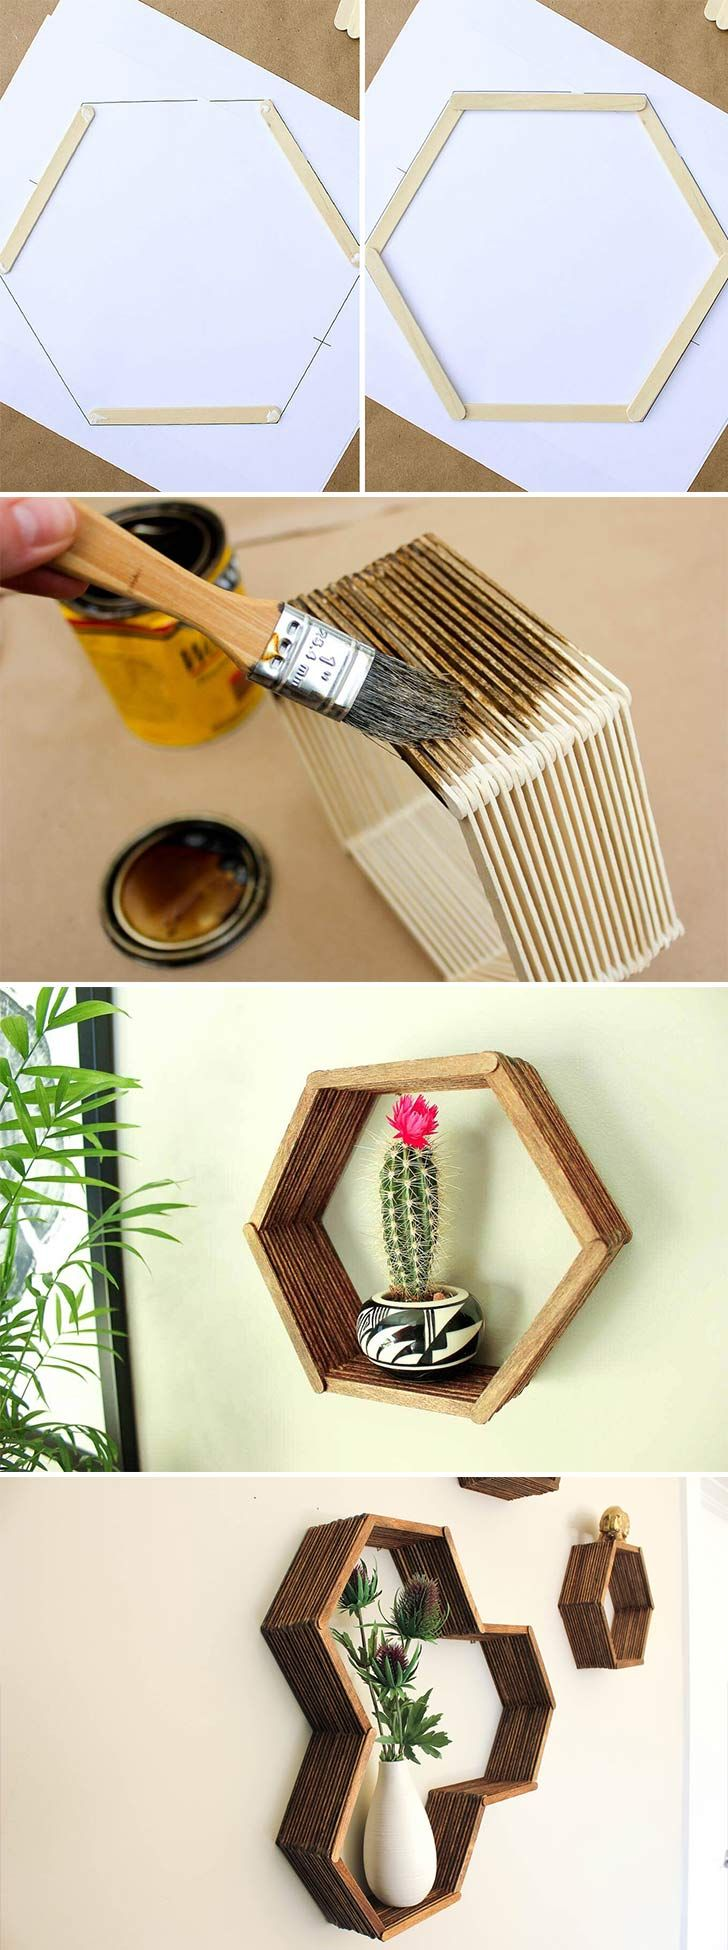 40 amazing diy home decor ideas that wont look diyed - Crafting Ideas For Home Decor